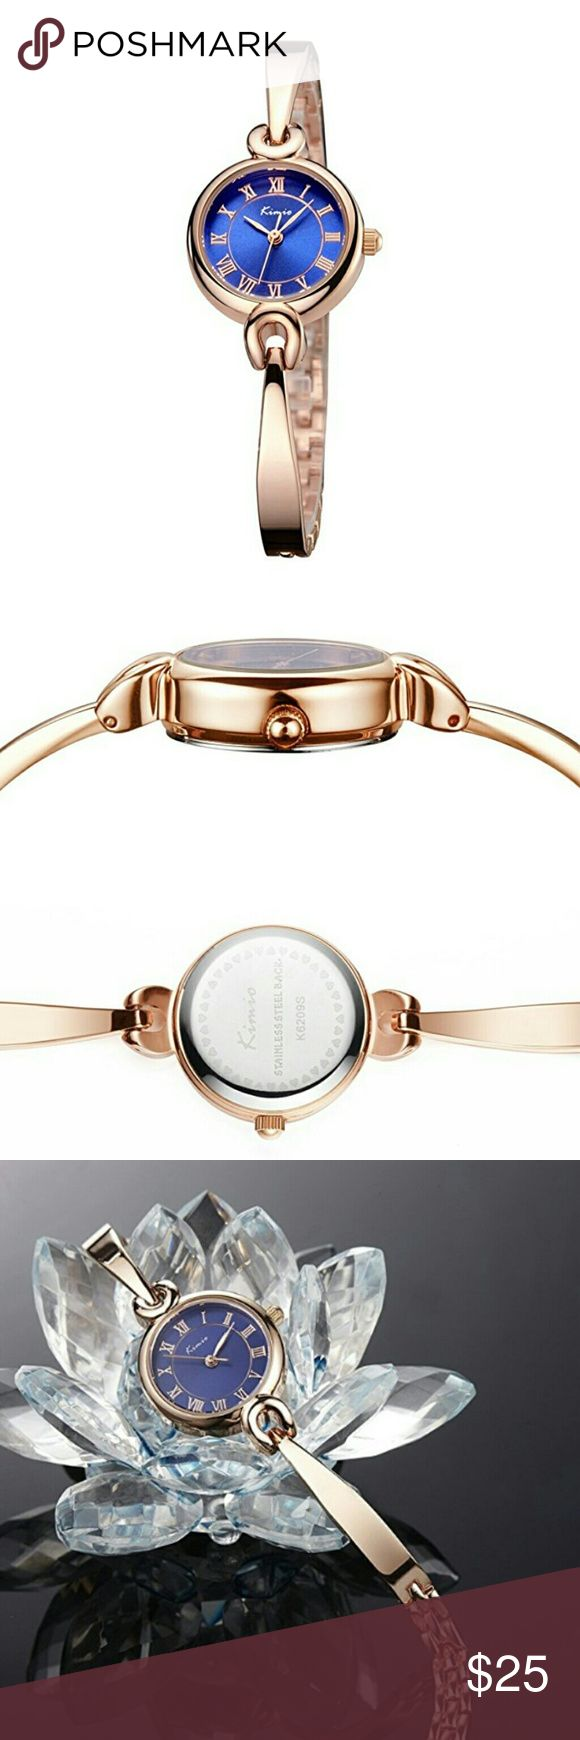 Luxury Rose Gold Watch Lady Elegant Luxury Rose Gold Watch Lady Elegant Bracelet watch.About this item ELEGANT SIMPLE DESIGN: 0.91?(2.3cm) diameter rose golden tone watch case with same color index Roman number hour markers and sword hands, royal blue dial with exquisite bracelet band, effortlessly elegant and luxury, showing the time clearly NOT EASY TO FADE: we use high technology to plate the rose golden color and guarantee the color will last for long time, also, it is scratch resistant…